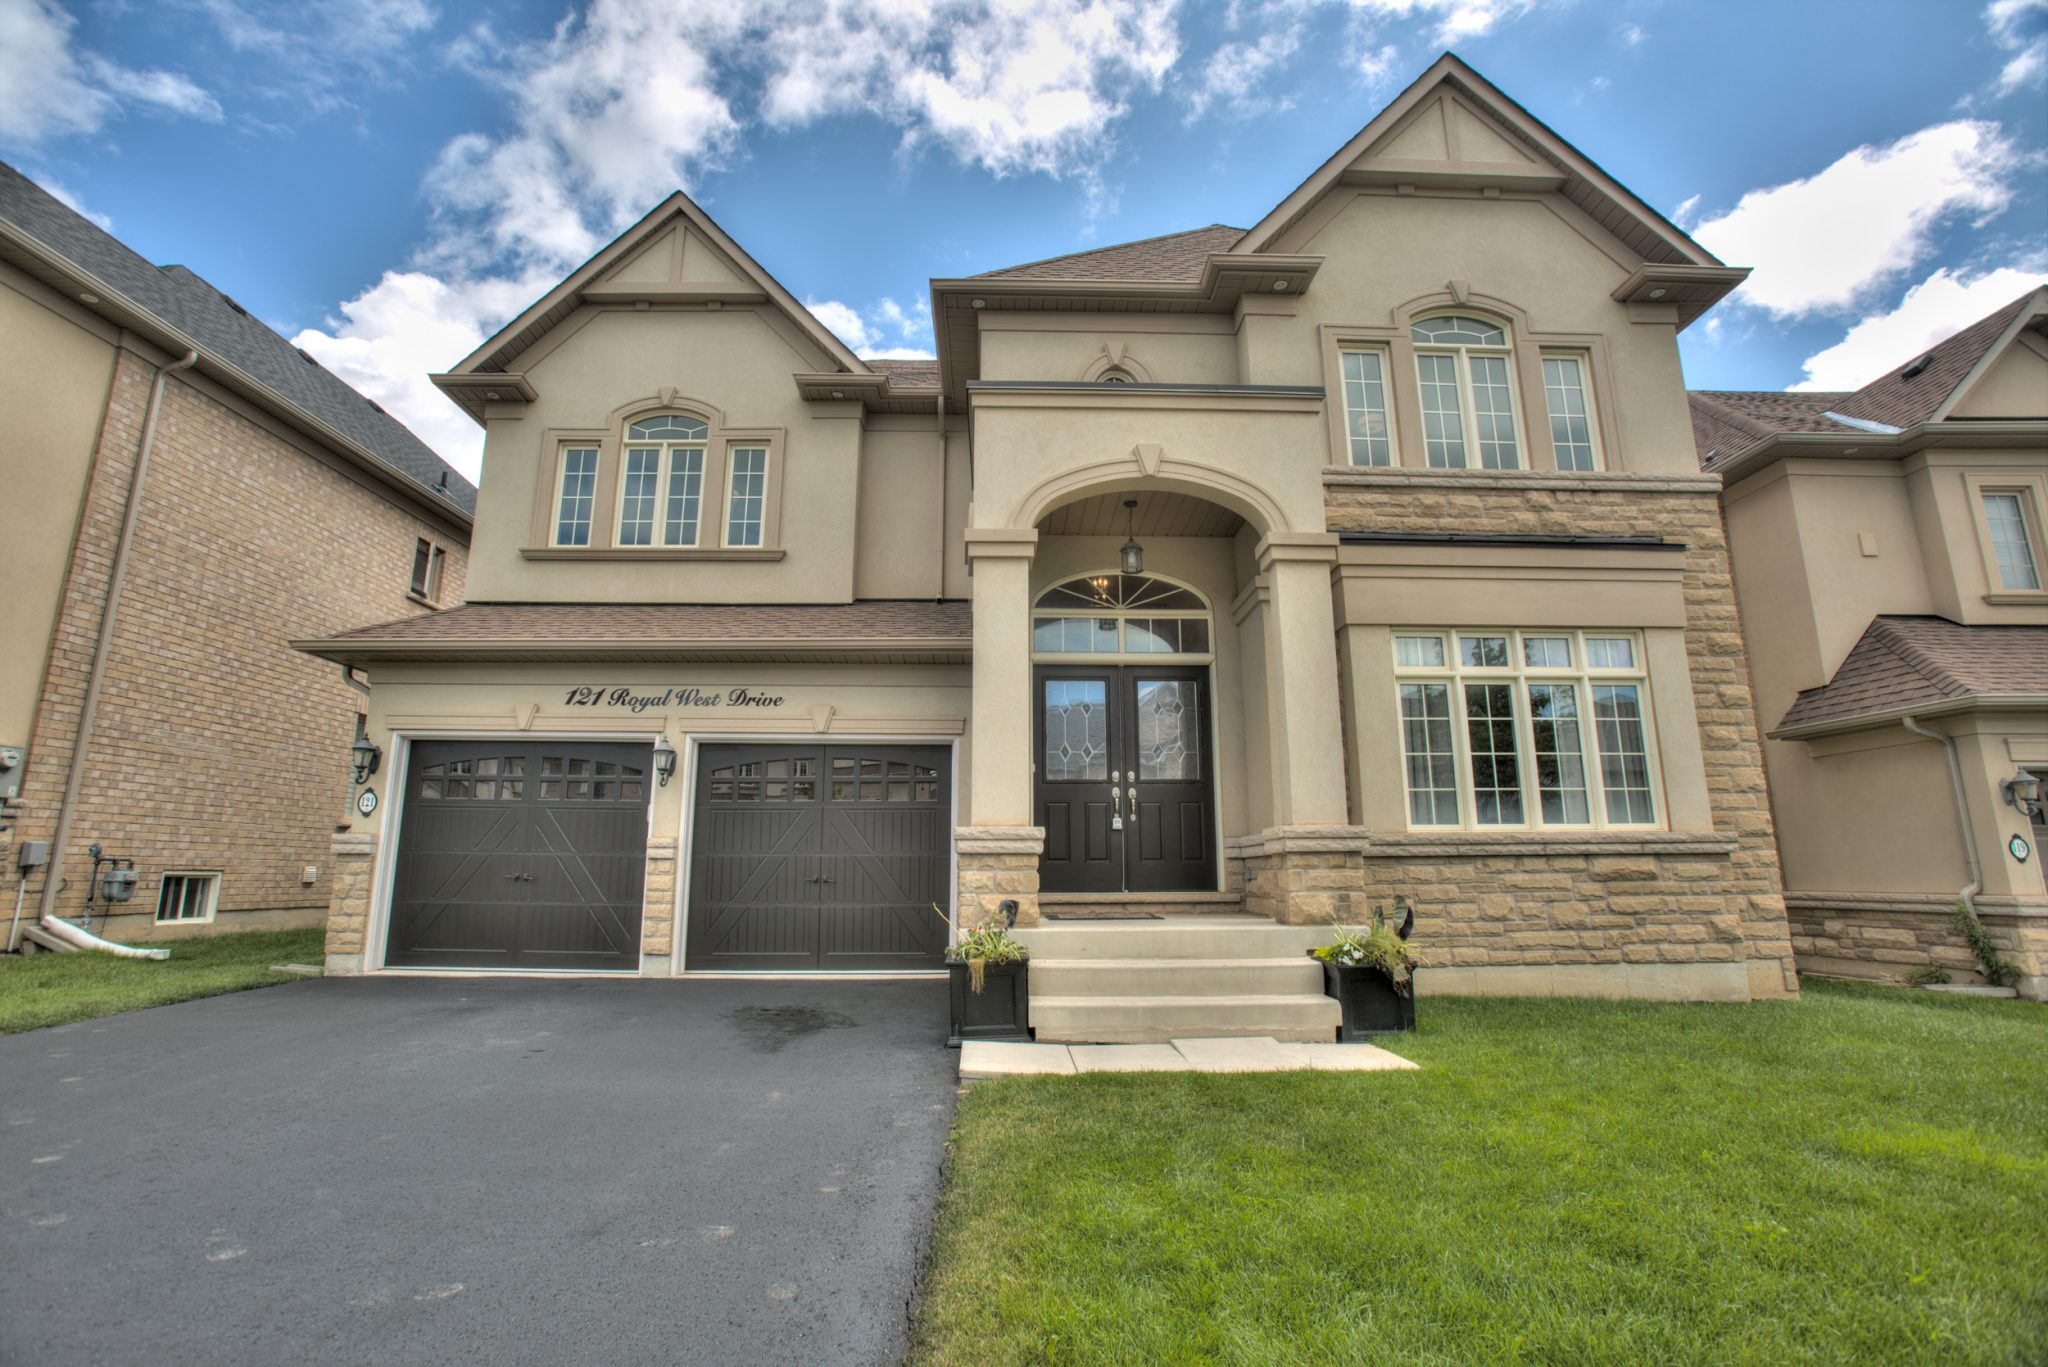 Homes For Sale On Royal West Drive In Brampton